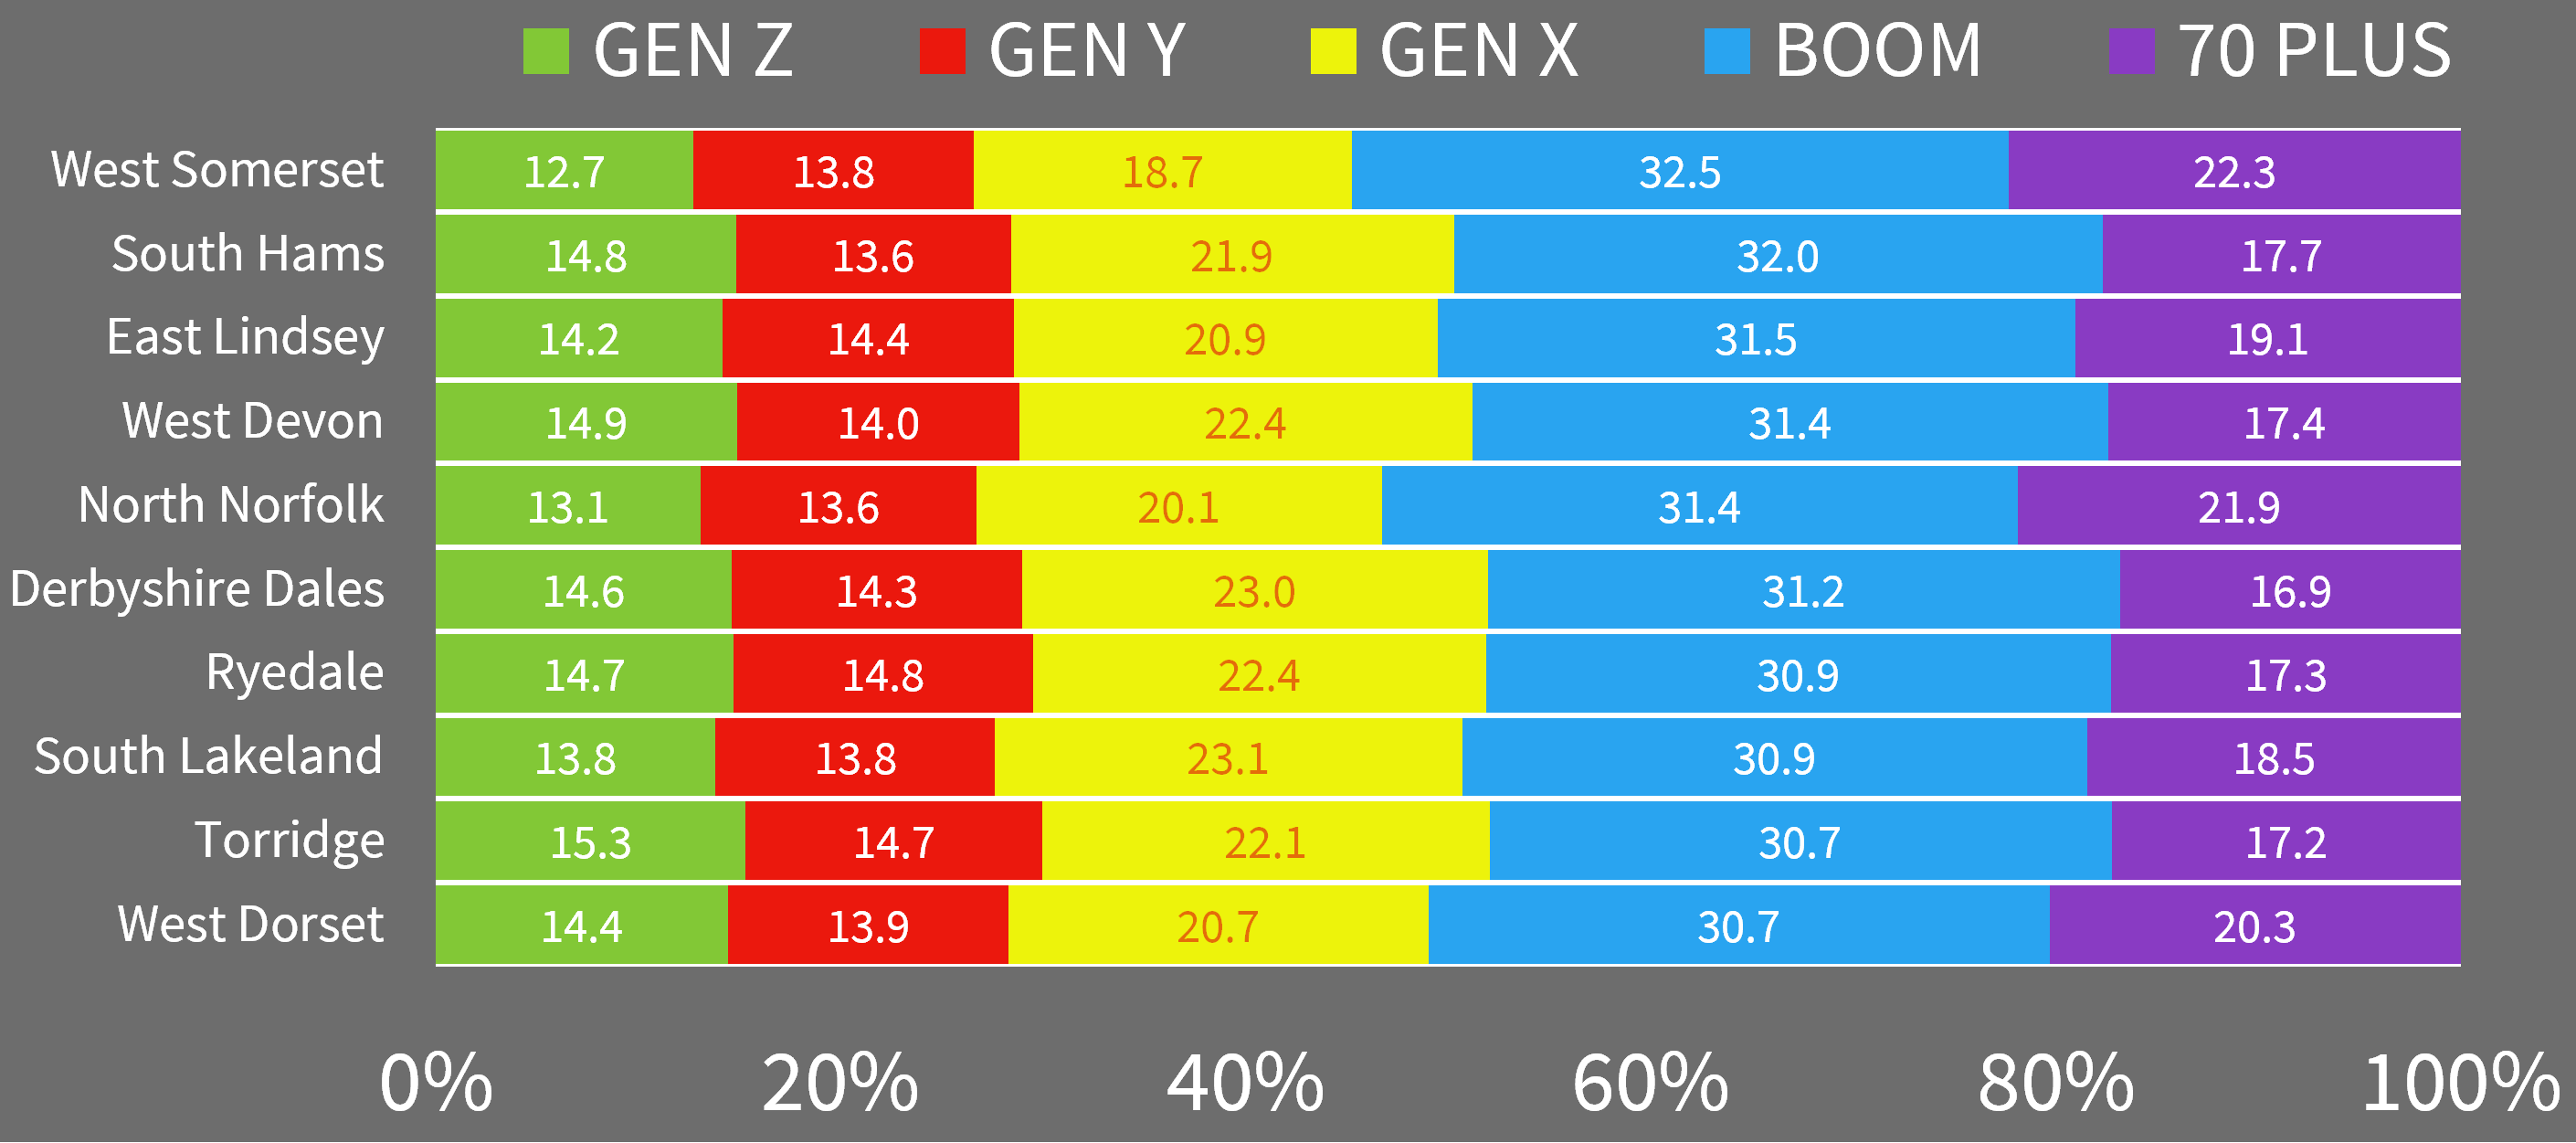 the generations of the uk the huffington post 2015 07 24 1437741287 5413202 genboom top 10 png